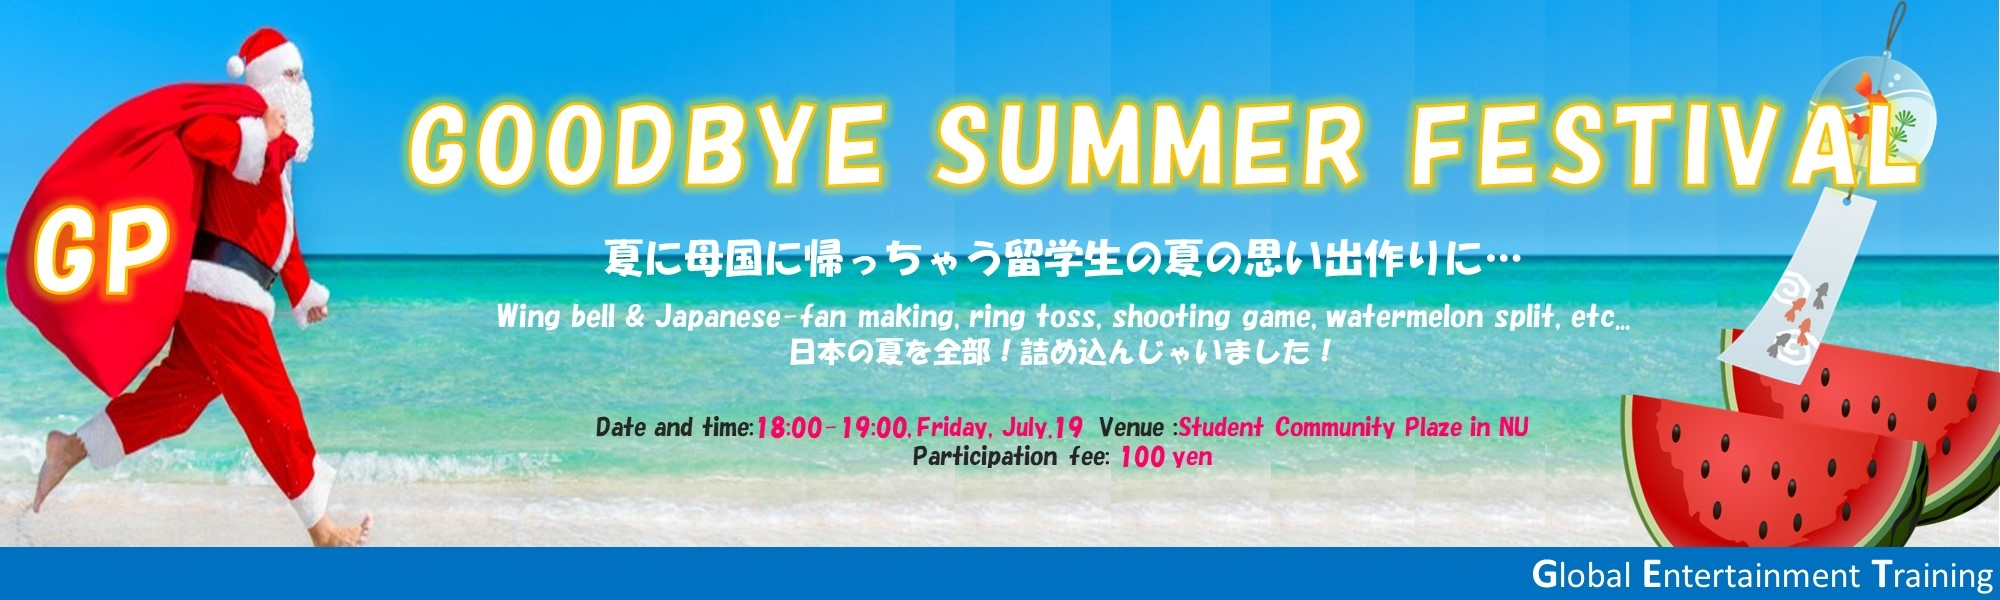 GP Goodbye Summer Festival